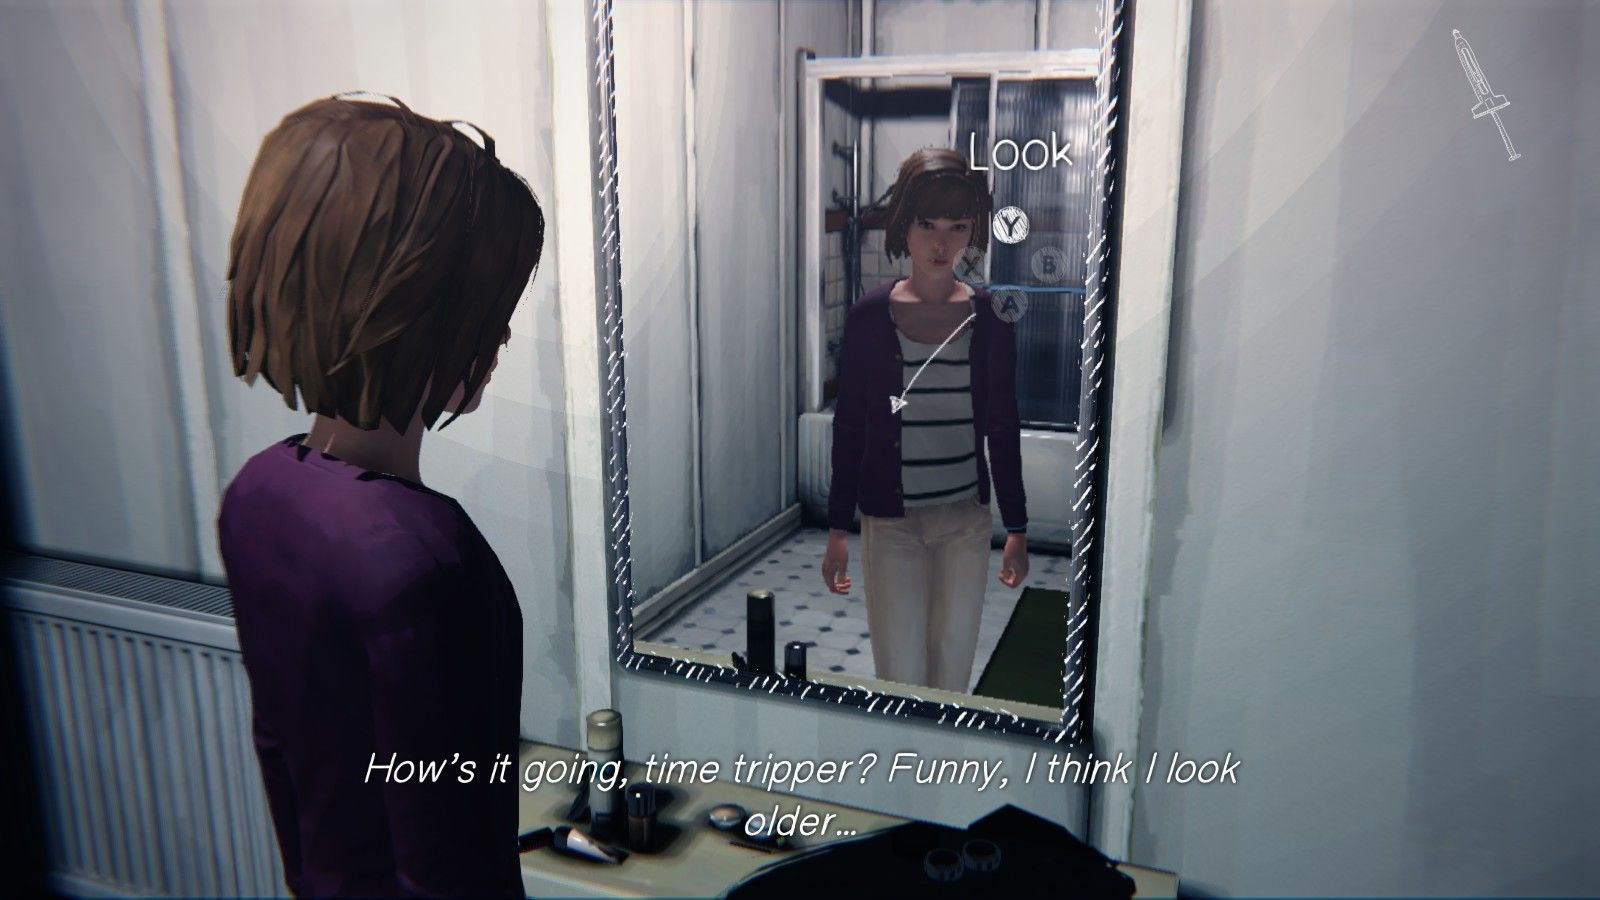 """A screencap of Max looking into a mirror, with the text: """"How's it going, time tripper? Funny, I think I look older..."""""""